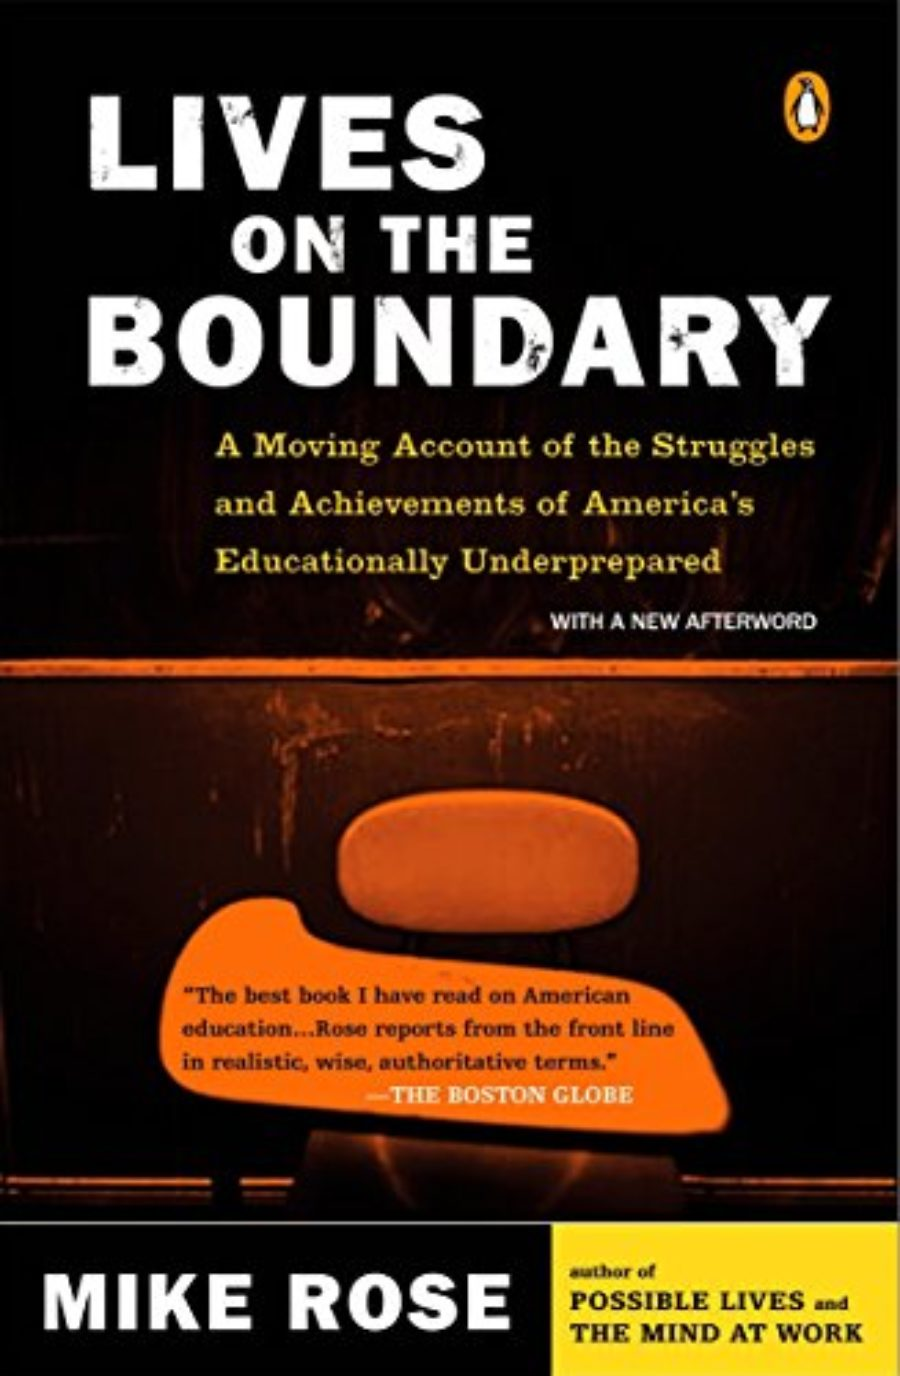 Cover of A Moving Account of the Struggles and Achievements of America's Educationally Underprepared